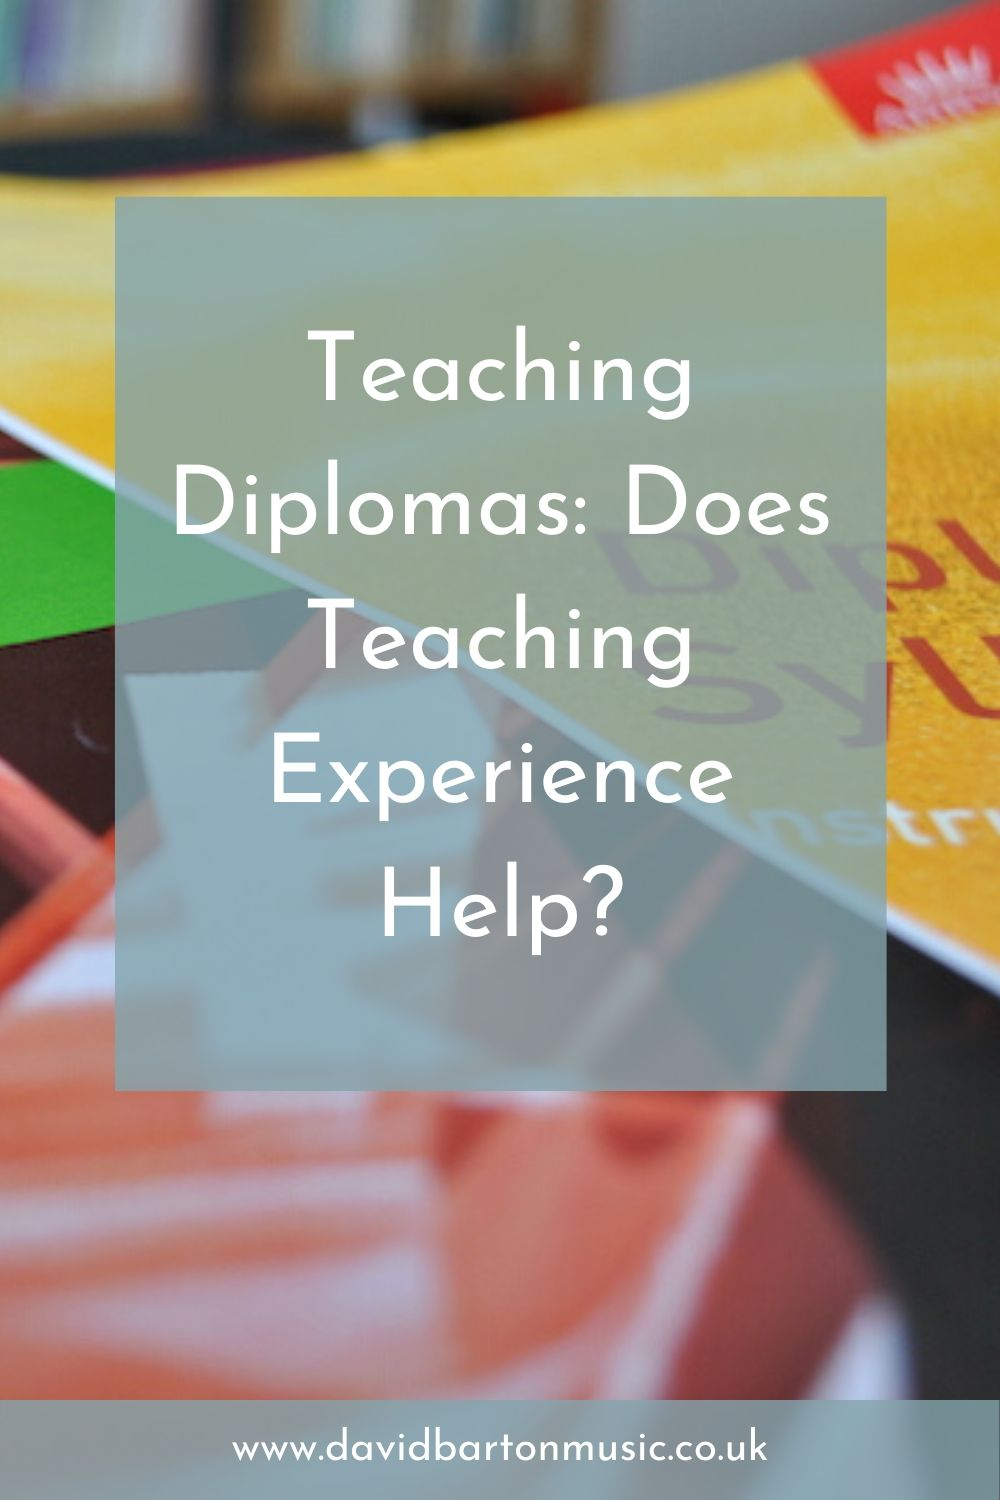 Teaching Diplomas: Does Teaching Experience Help? - Pinterest Graphic